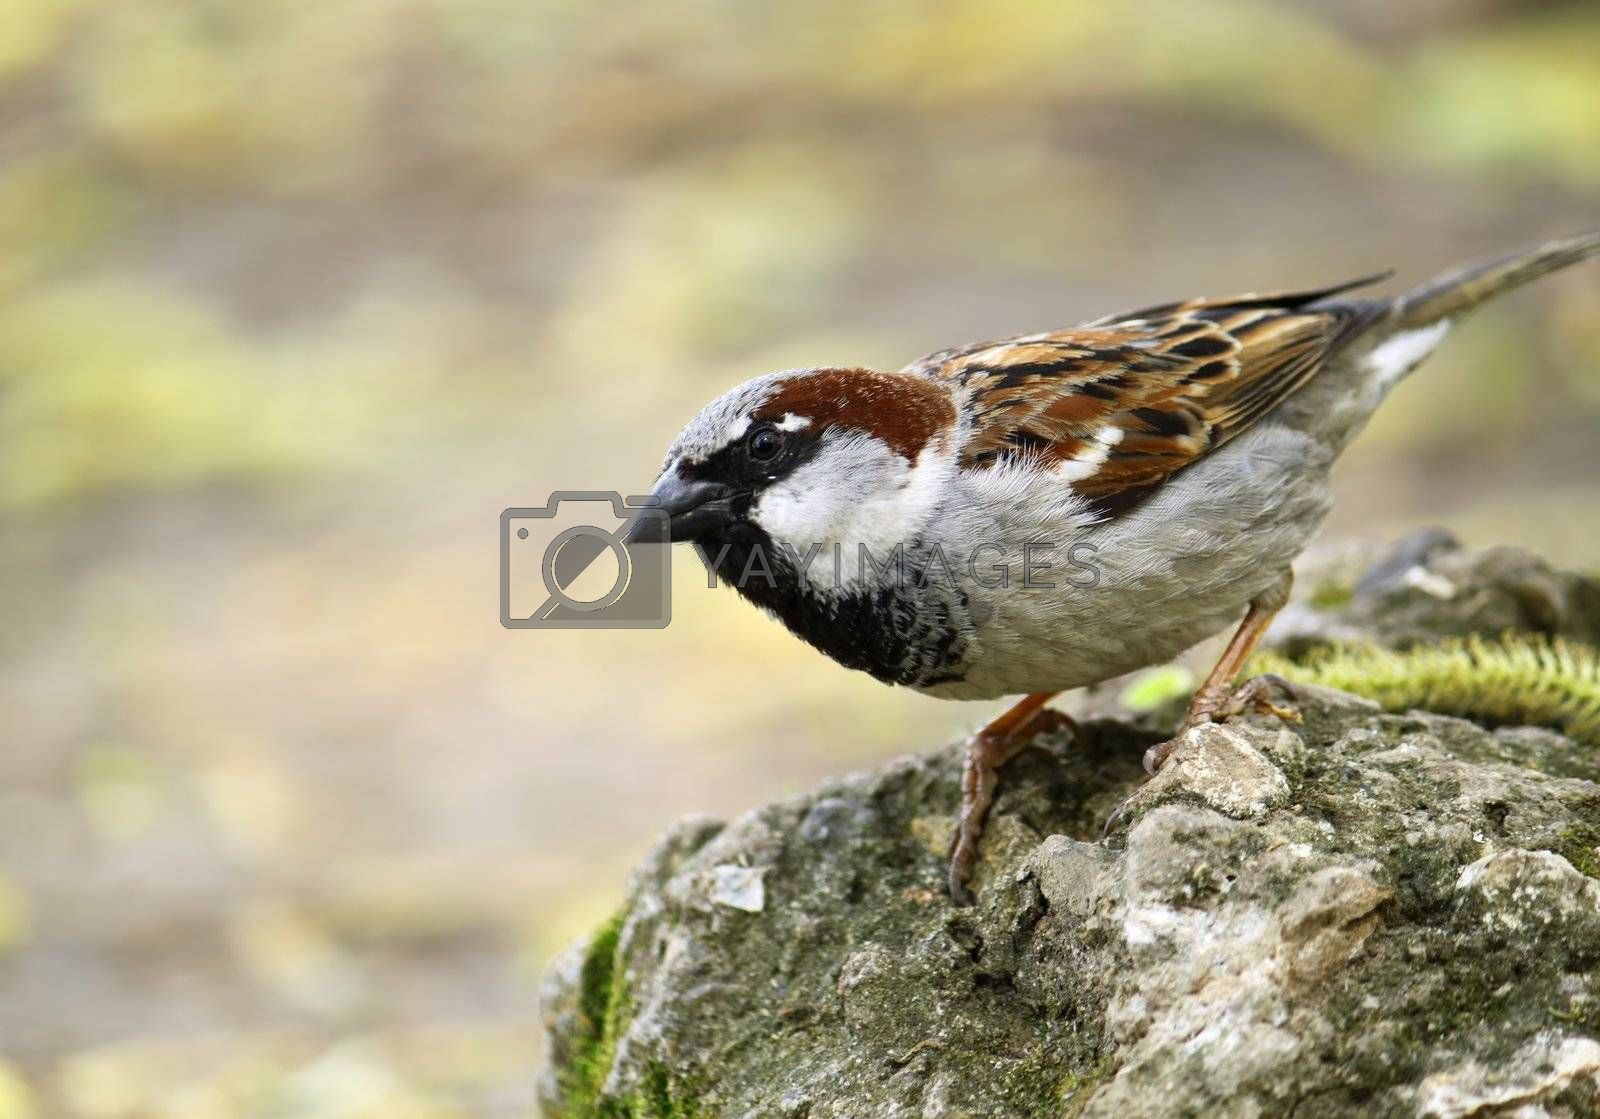 single sparrow sitting on a stone